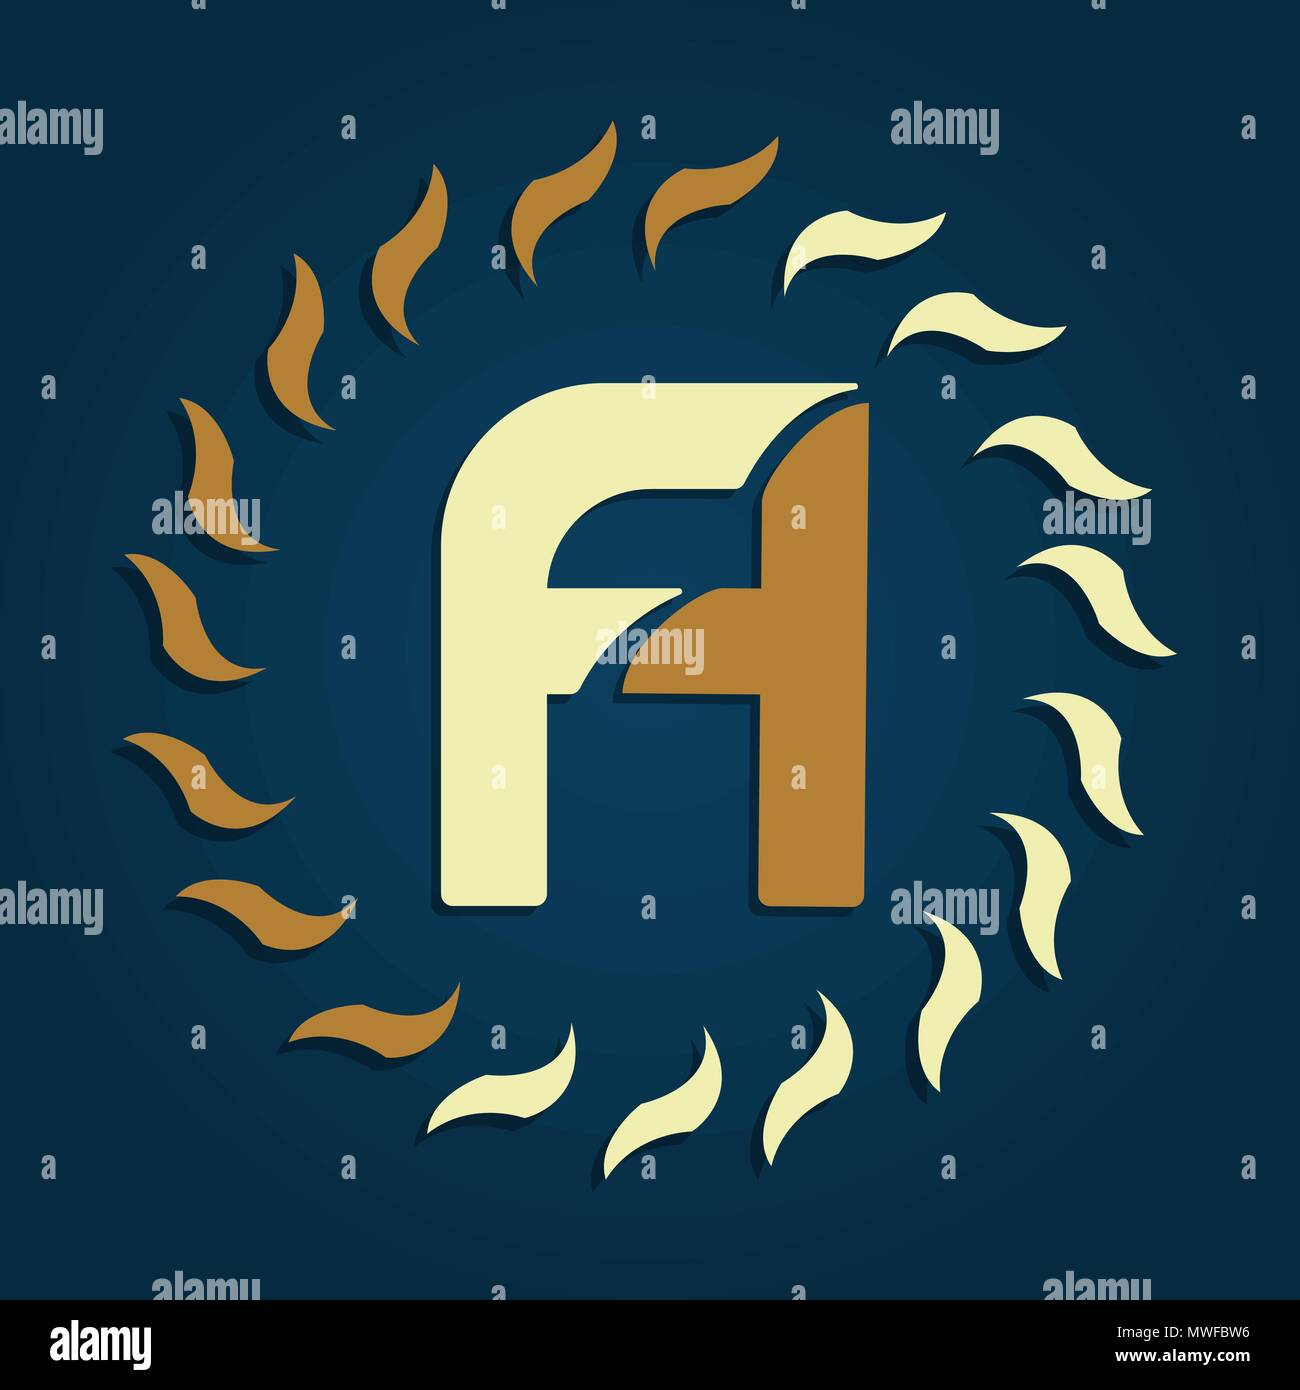 fa capital letters abstract luxury logo monogram design template